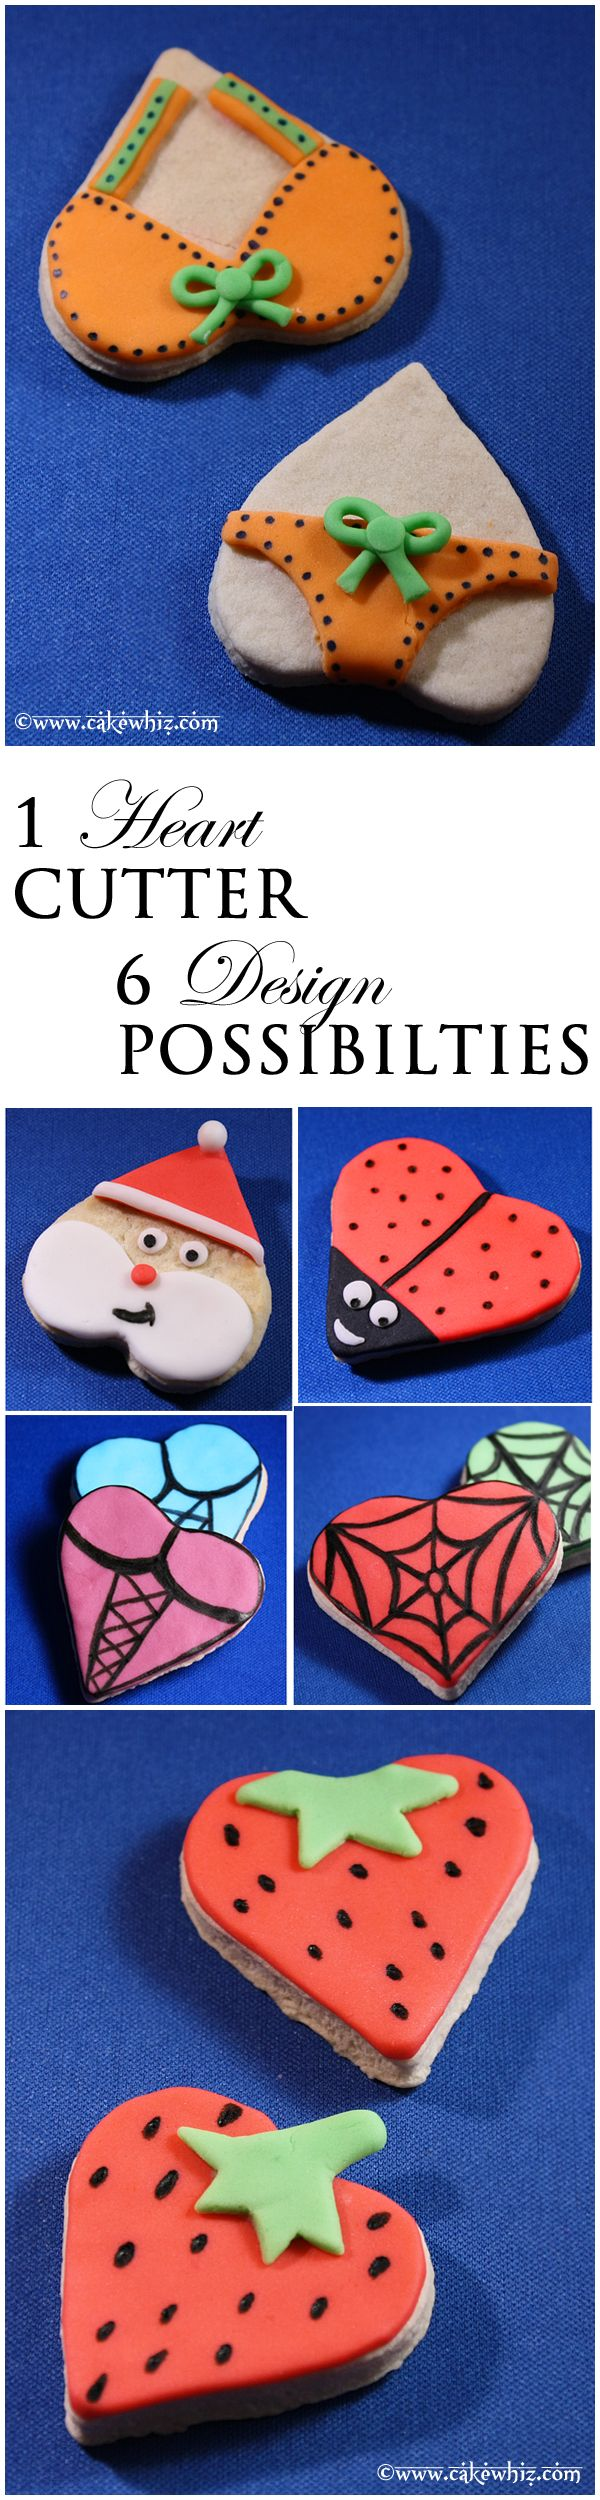 Use a single heart cookie cutter to make 6 cute designs